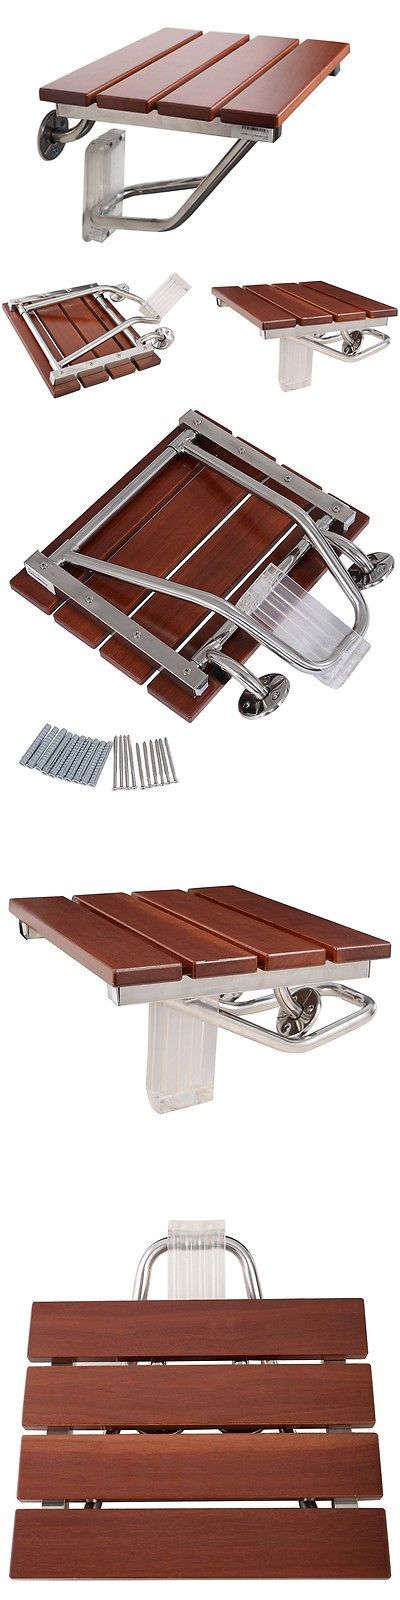 Shower and Bath Seats: Steel Folding Bath Seat Bench Shower Chair Wall Mount Solid Wood Construction -> BUY IT NOW ONLY: $62.04 on eBay!